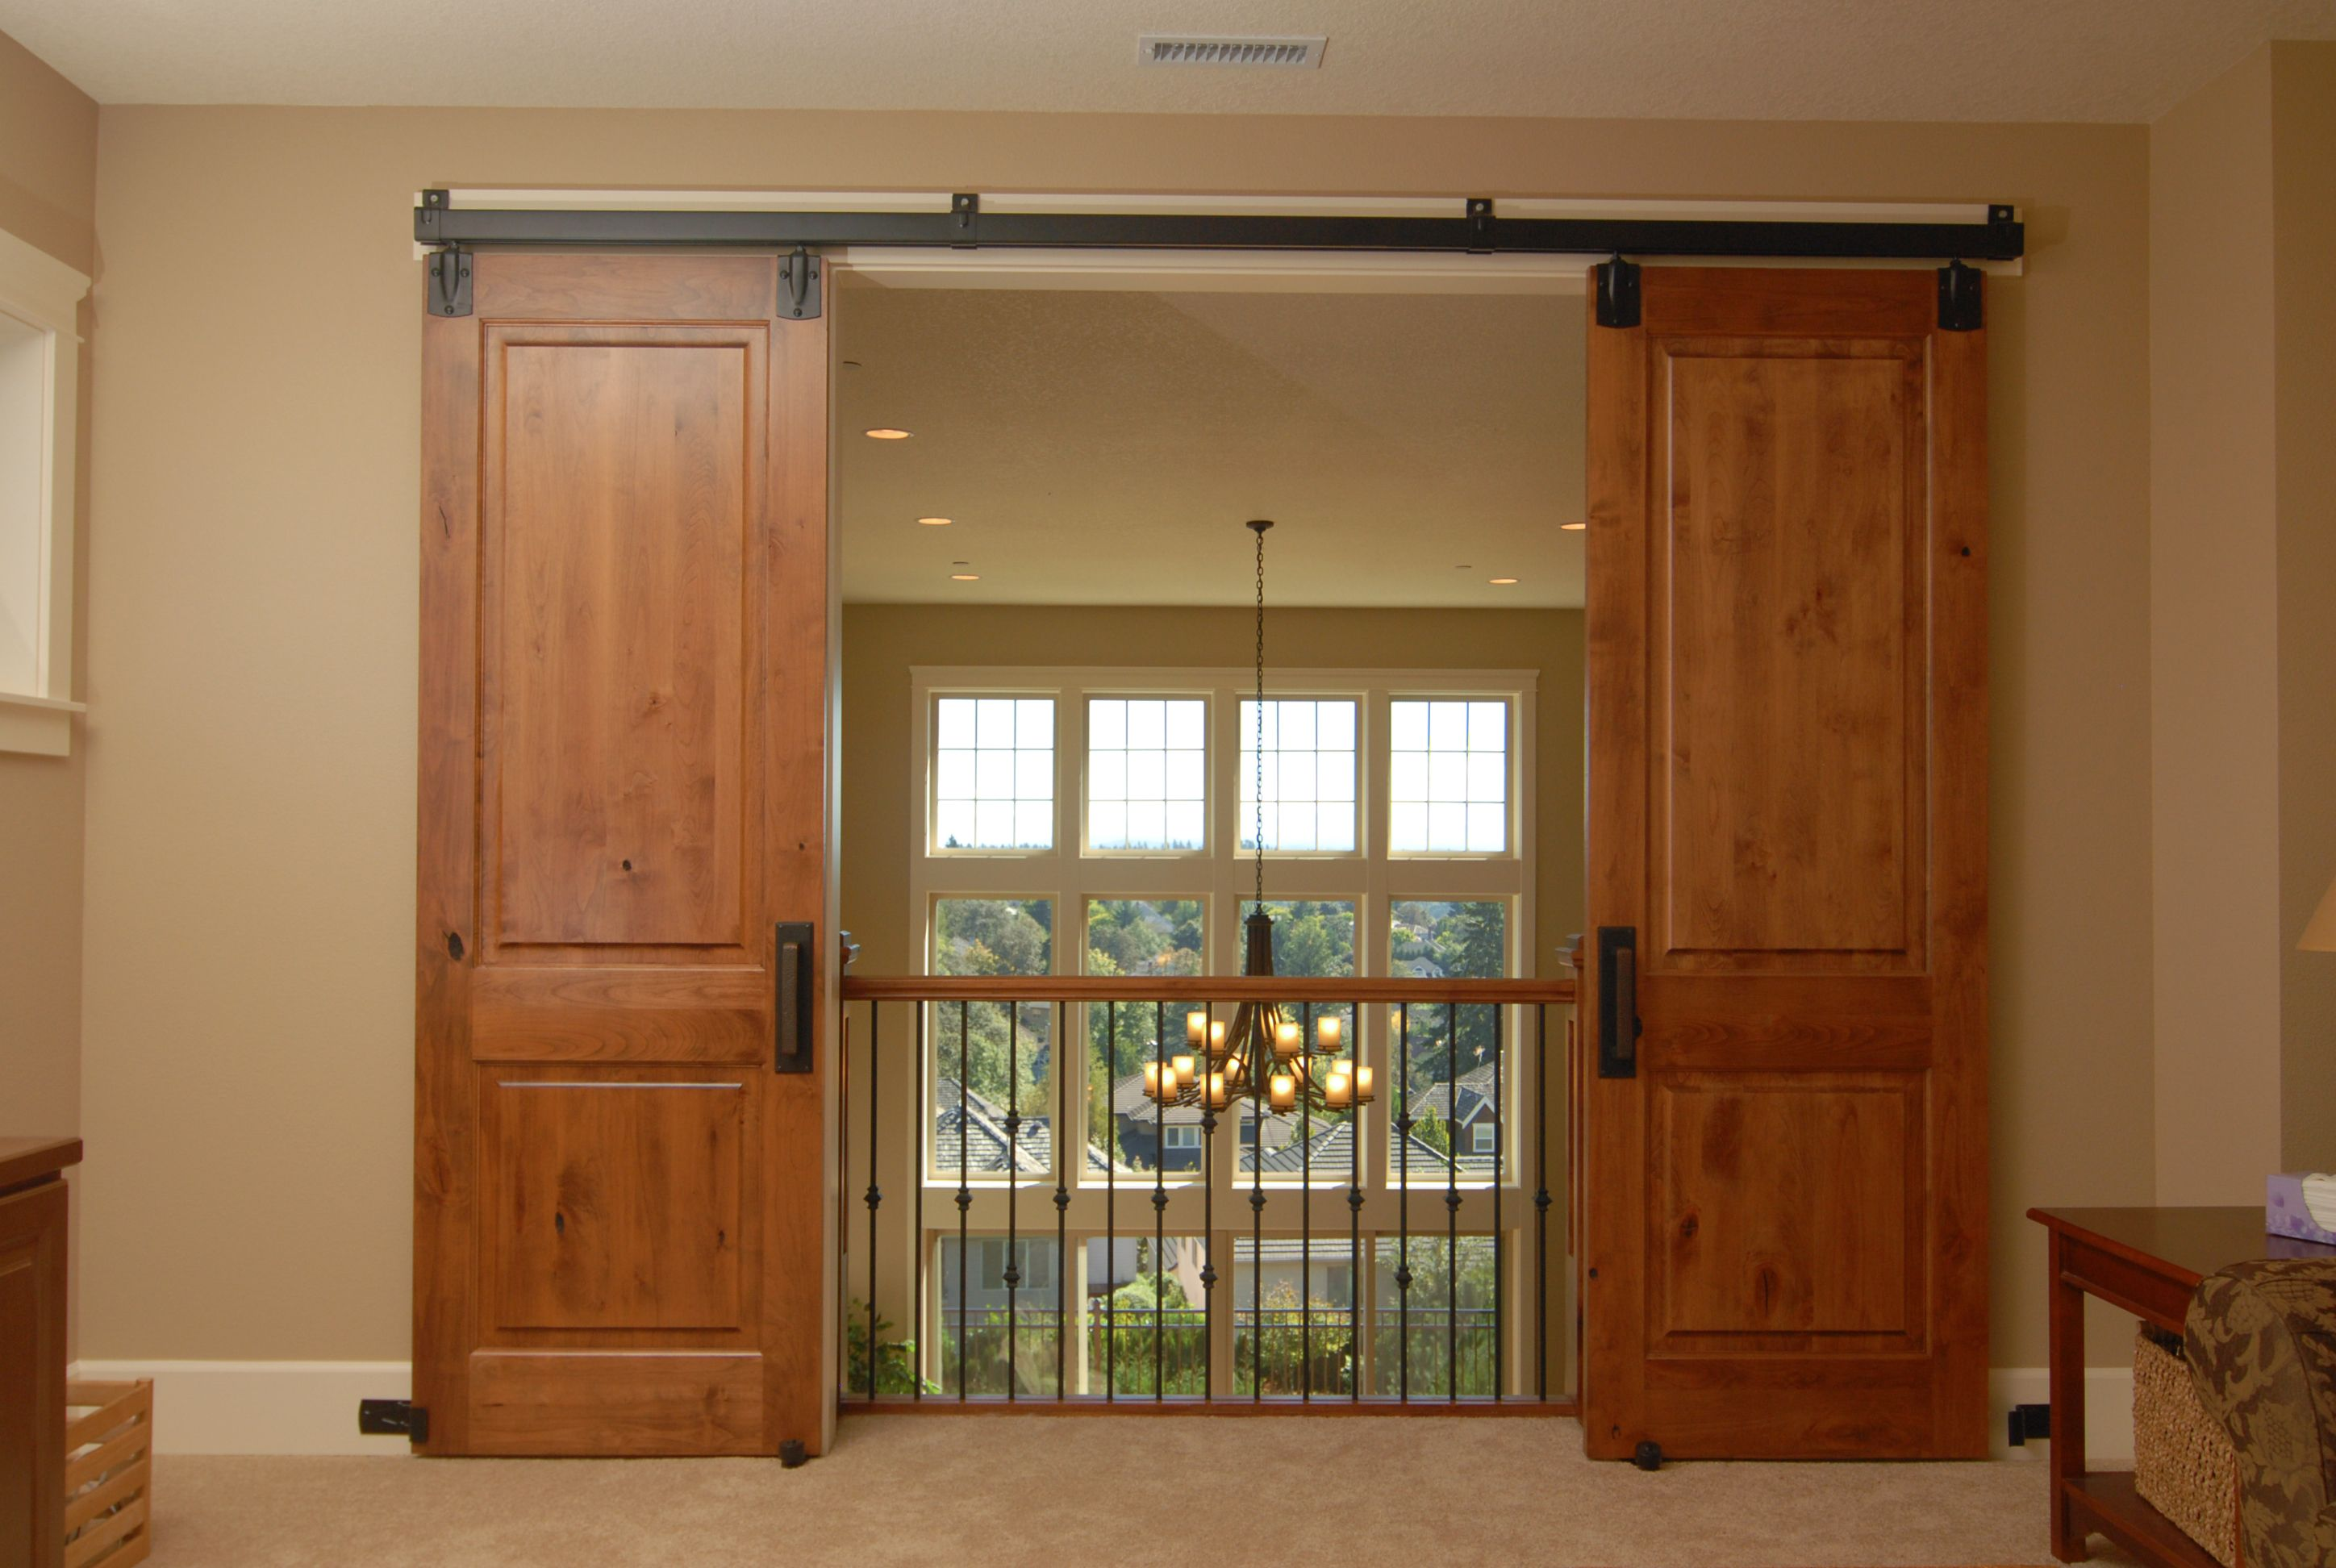 17 Best images about Room Dividers and Closet Doors on Pinterest | Sliding  barn doors, Indoor sliding doors and